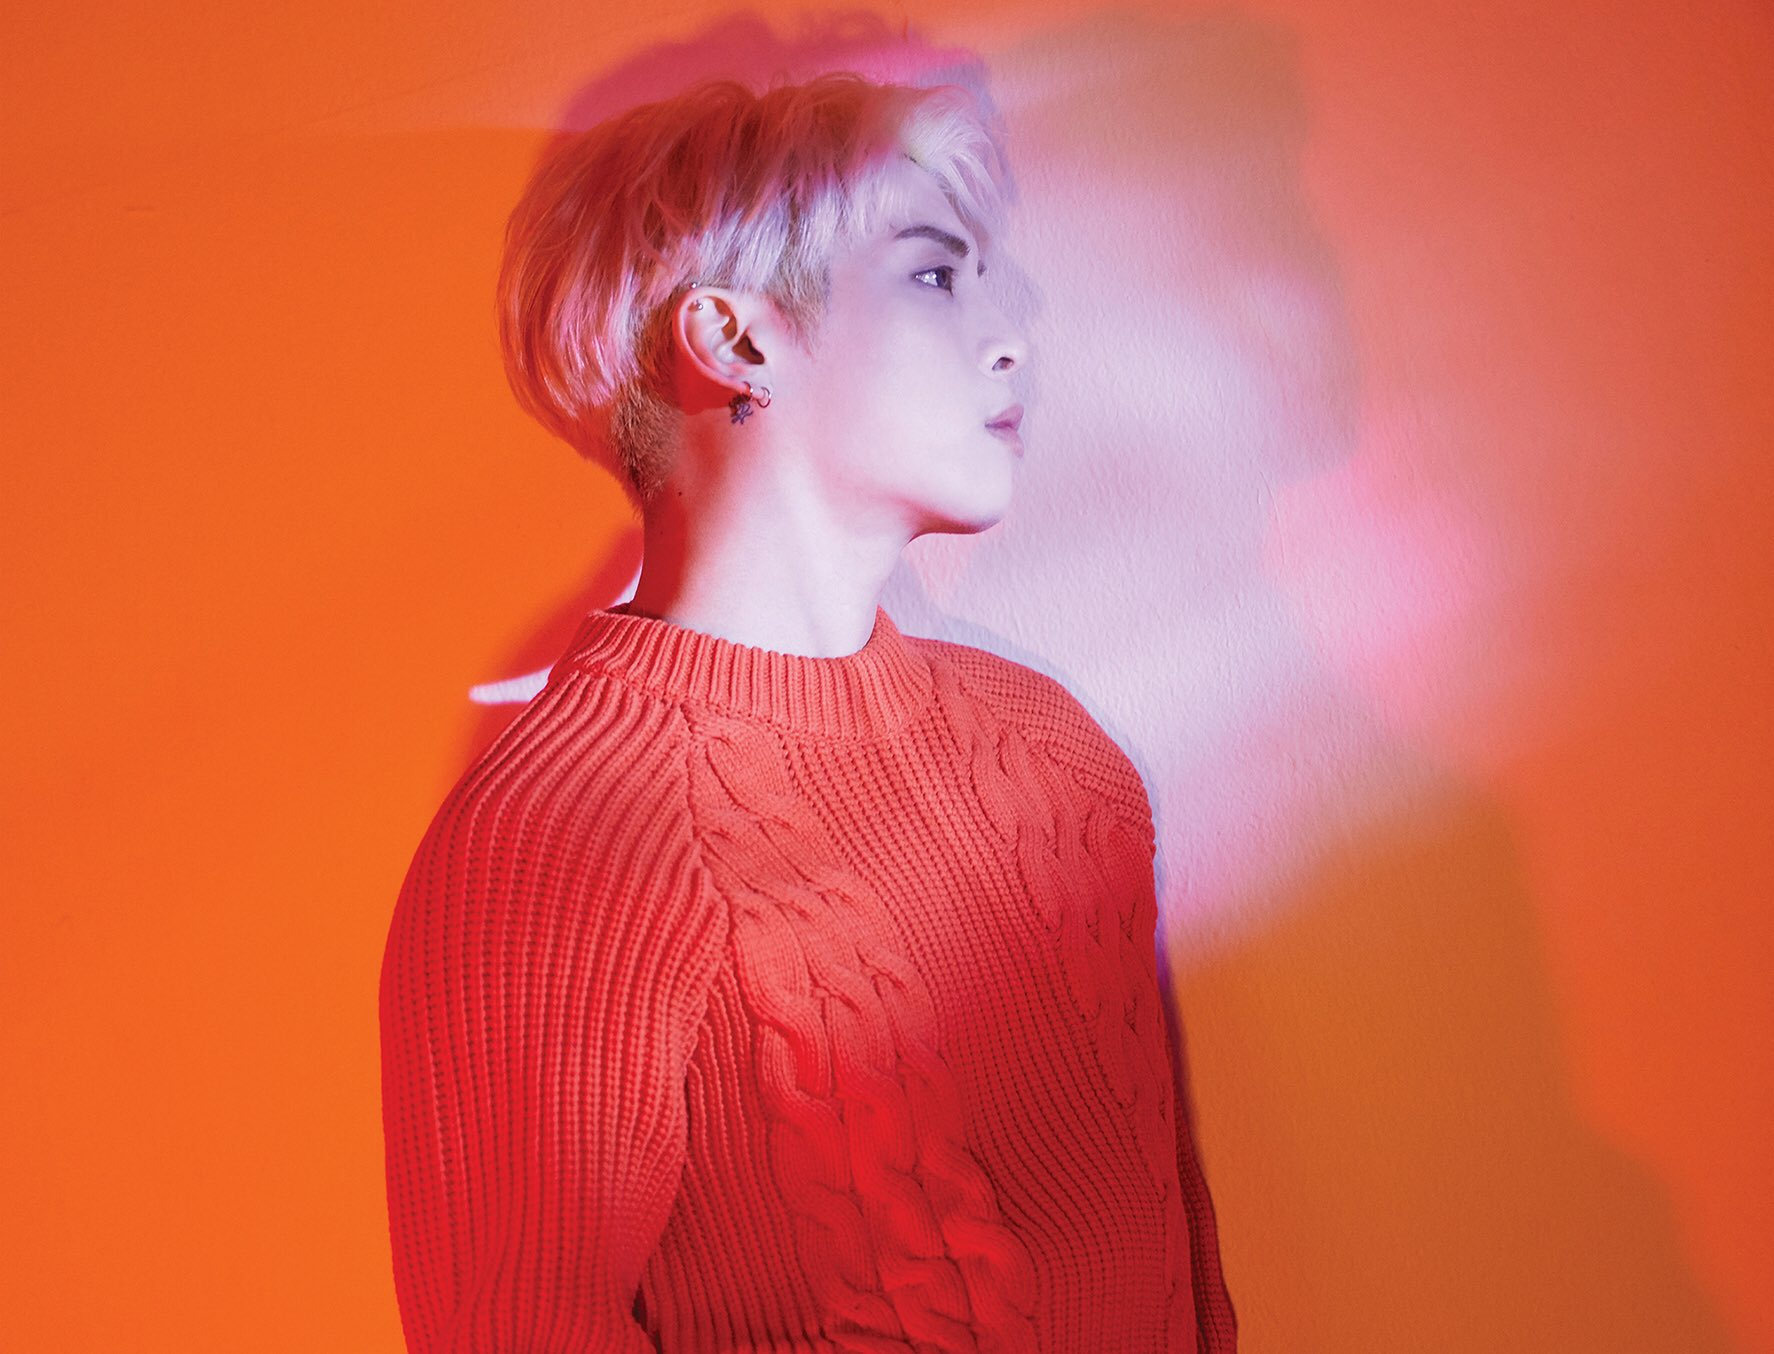 [K-talk]Jonghyun's last album released posthumously